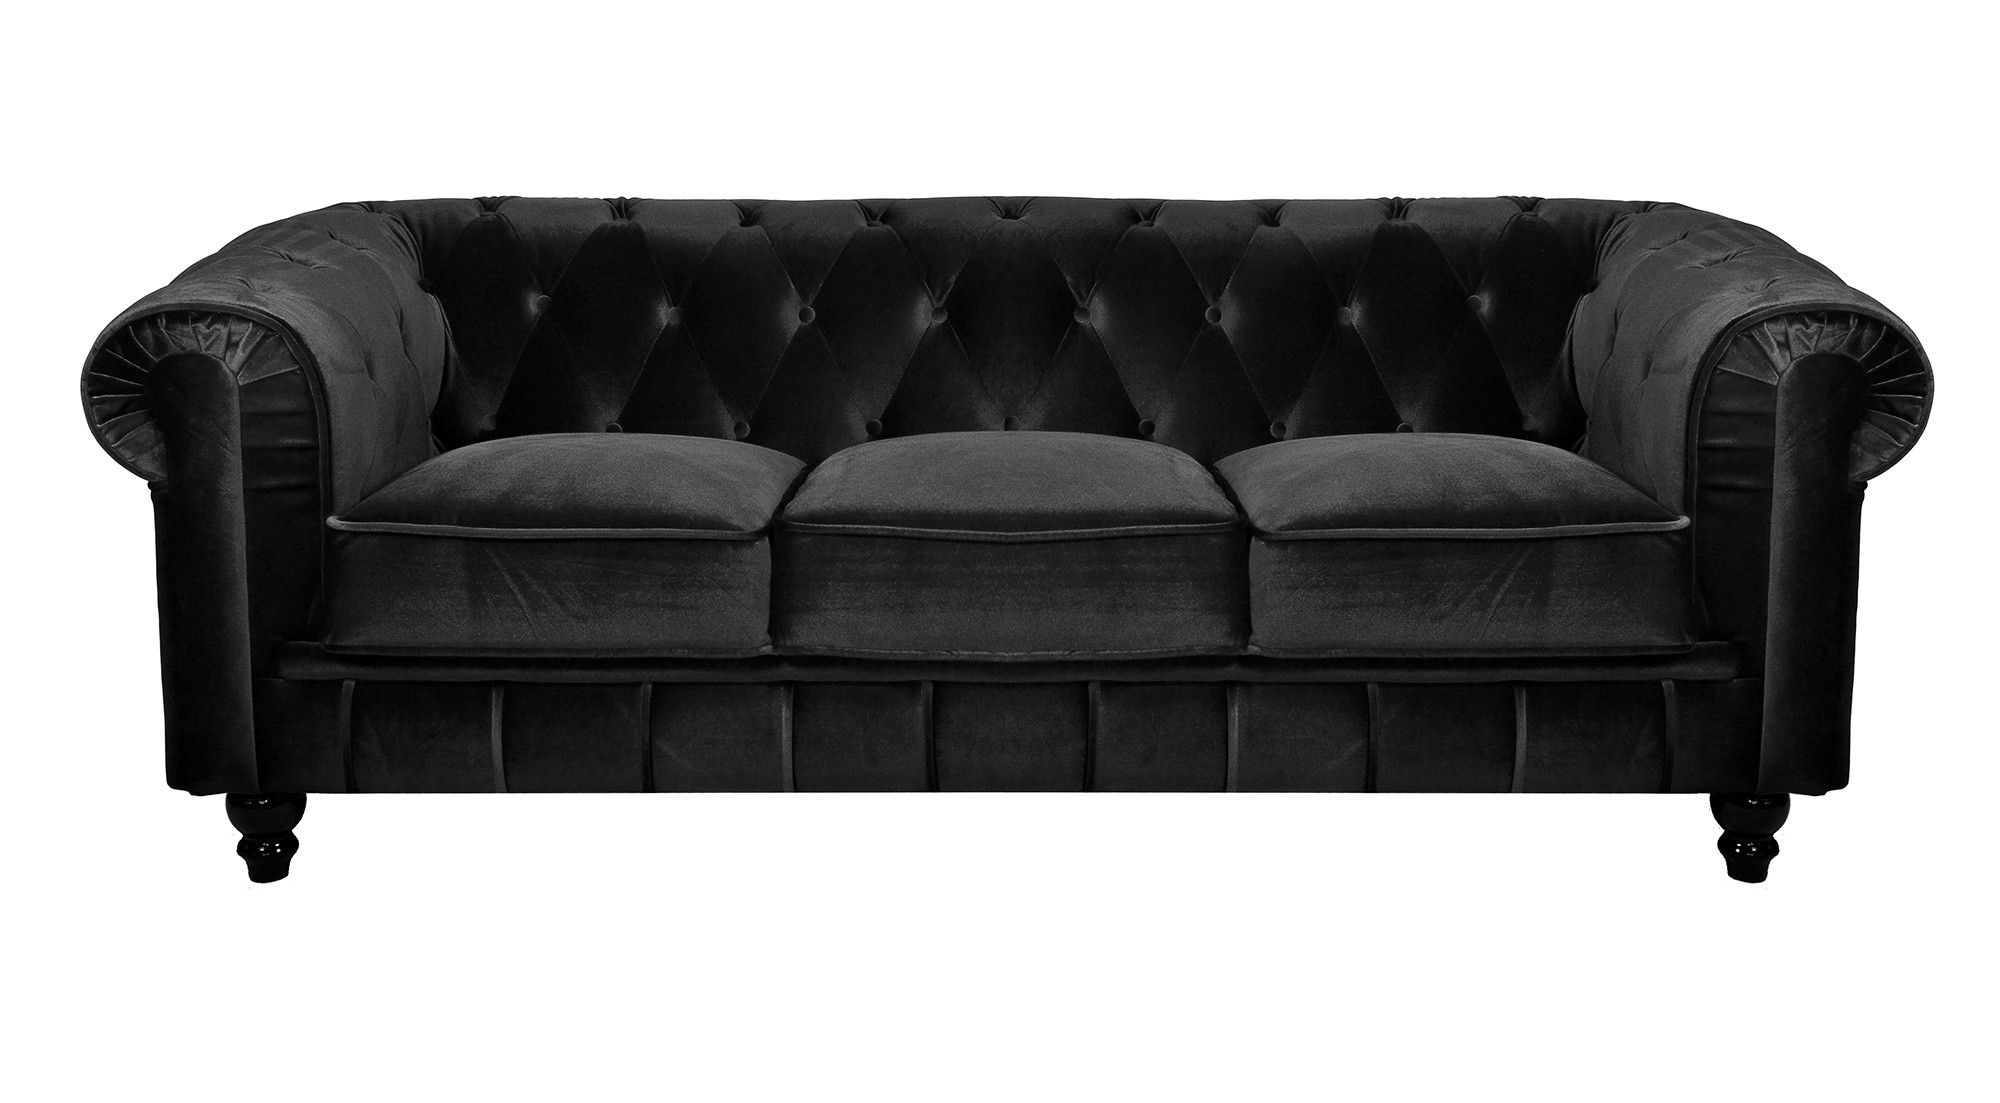 Canape convertible chesterfield velours canap id es de d coration de mai - Canape chesterfield velour ...